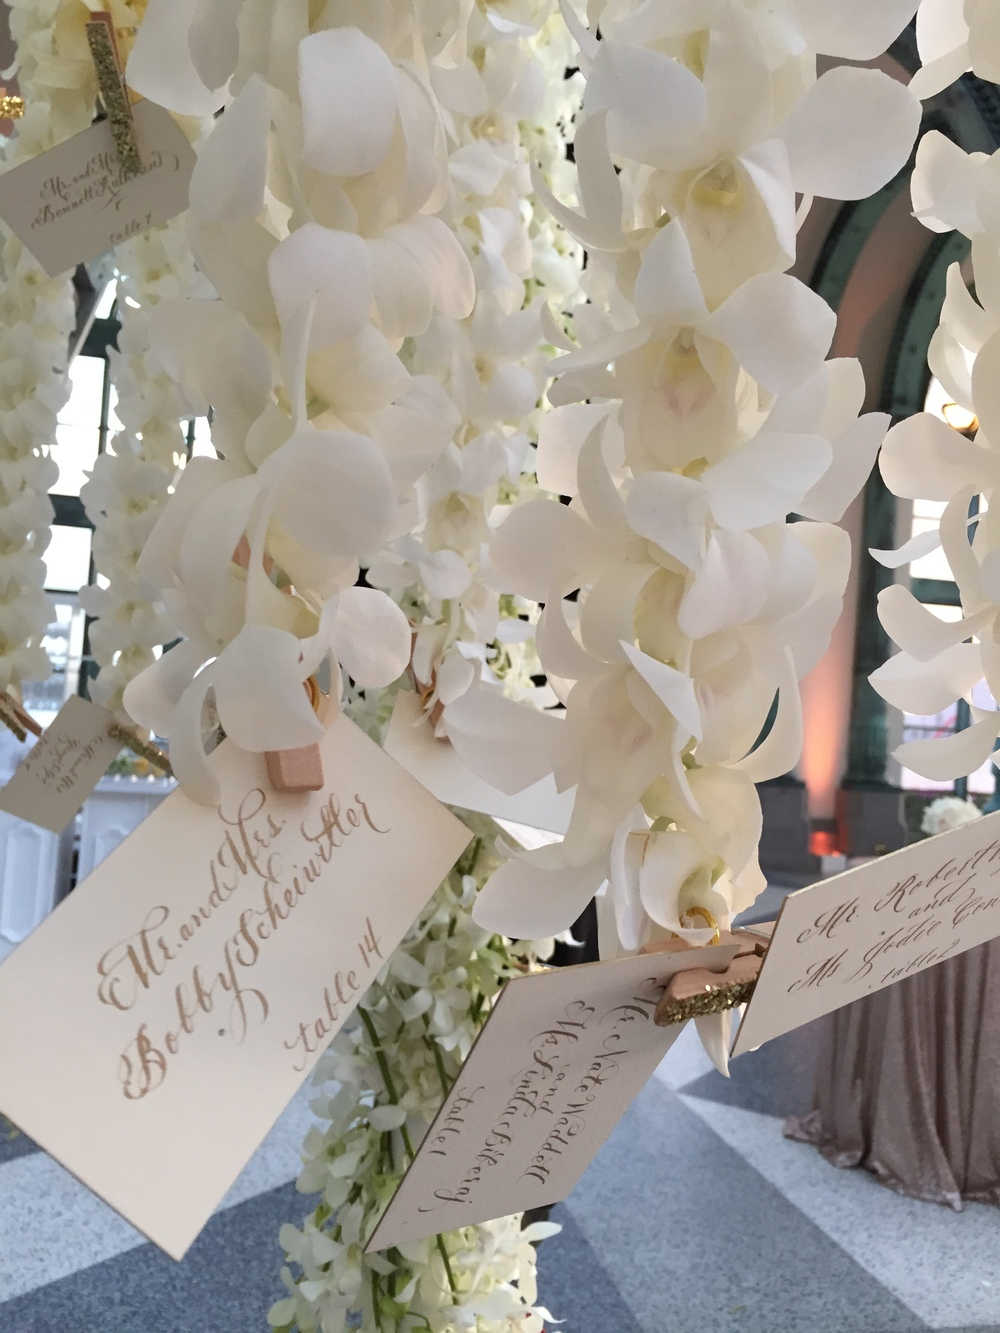 Escort cards hanging from Orchid bloom